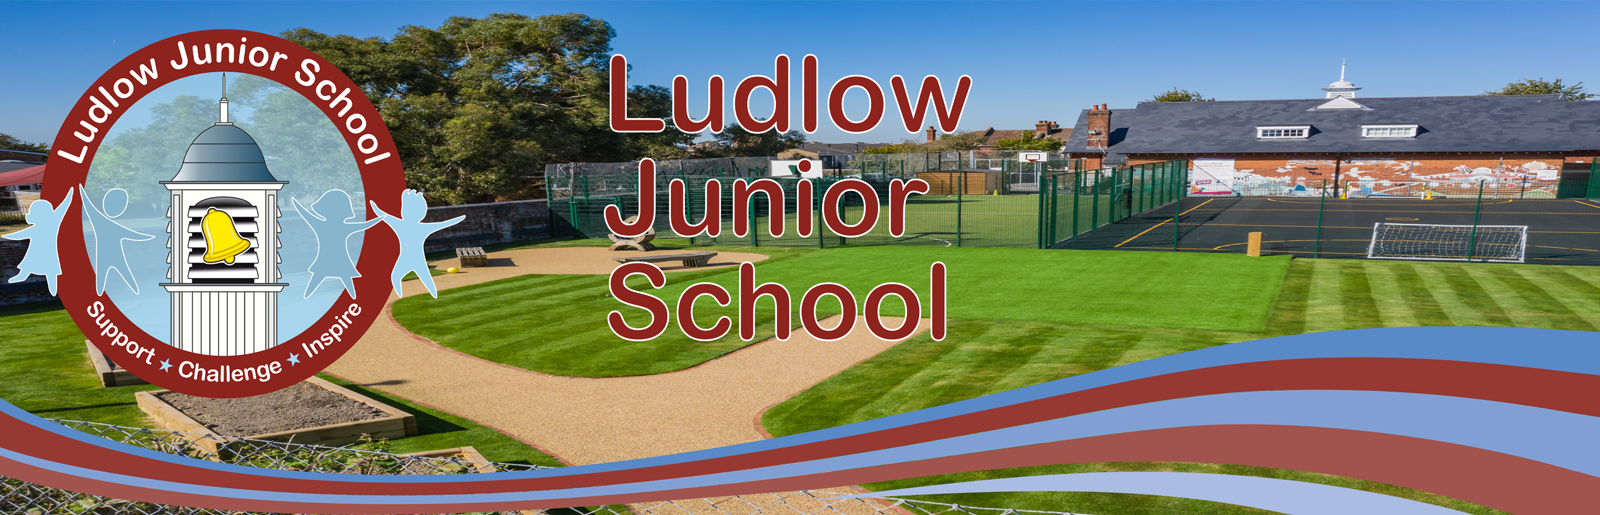 Ludlow Junior School